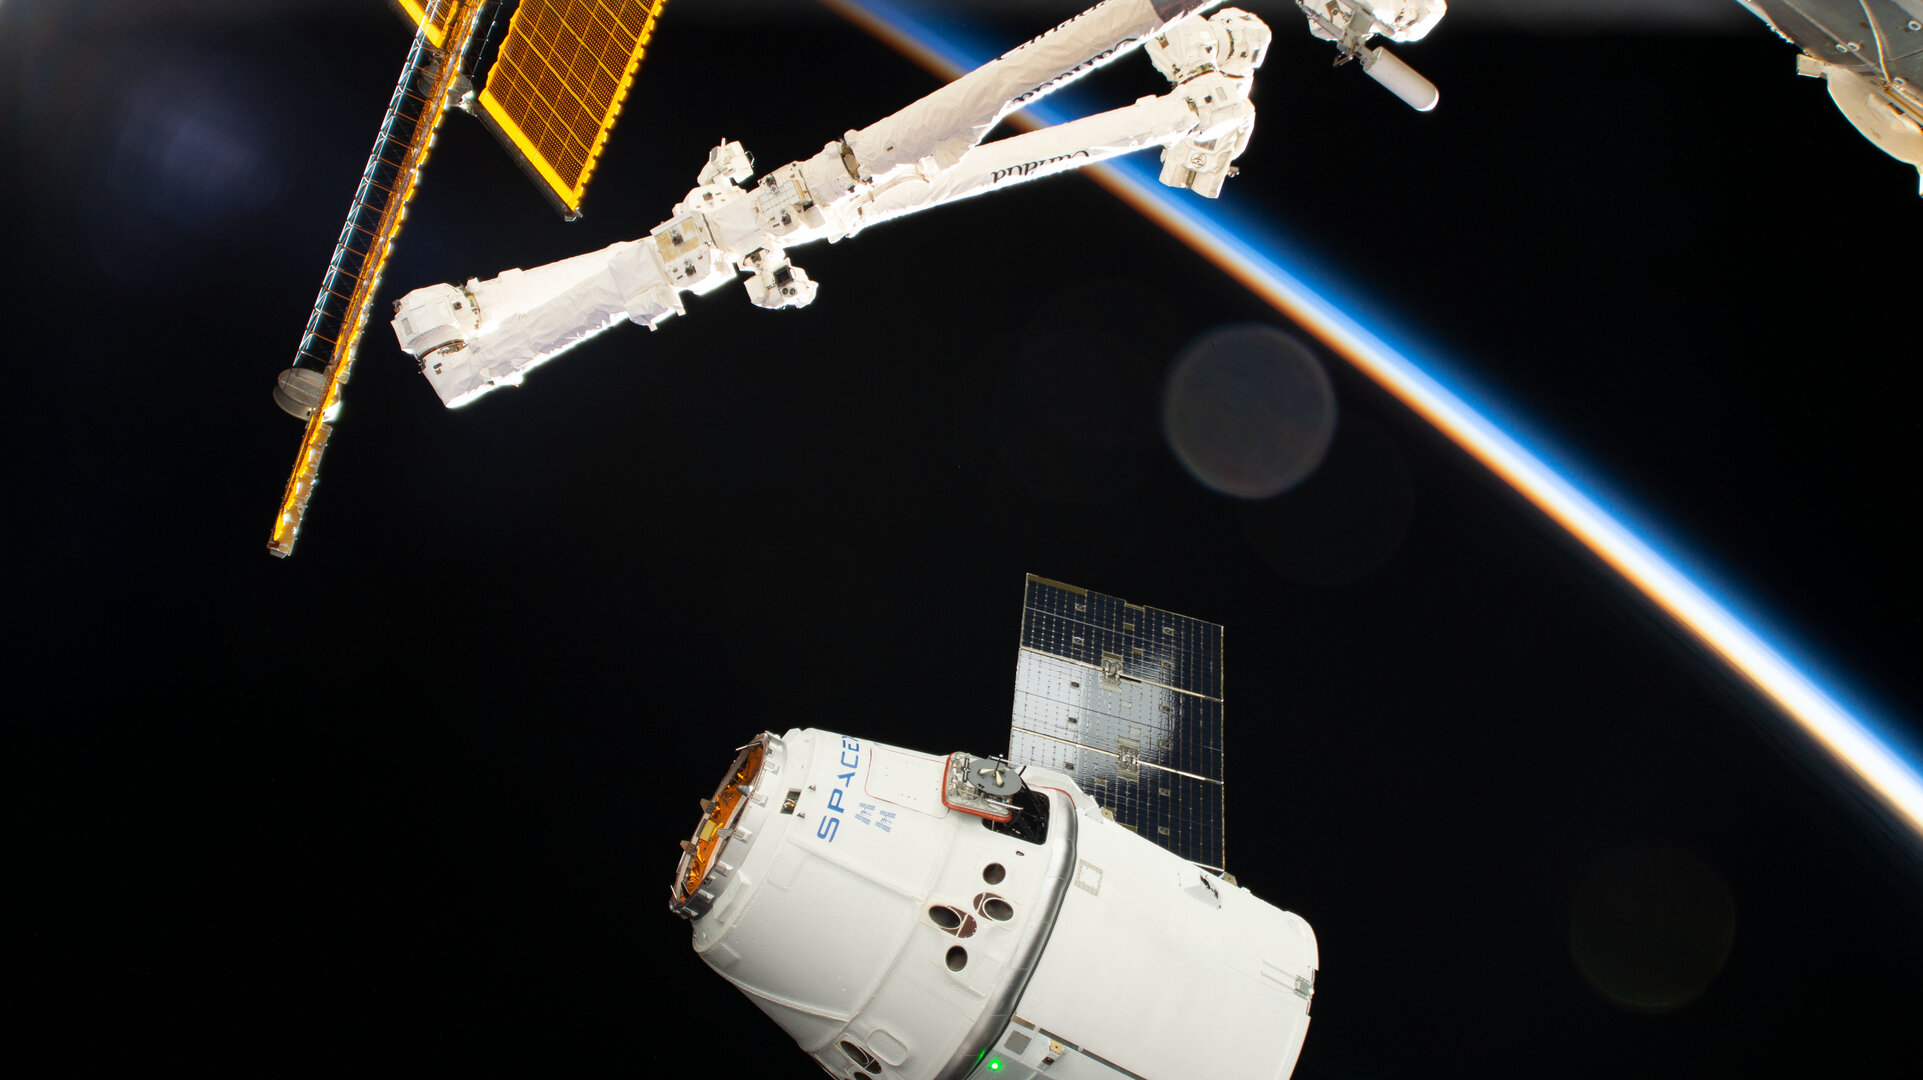 The SpaceX Dragon approaches the International Space Station